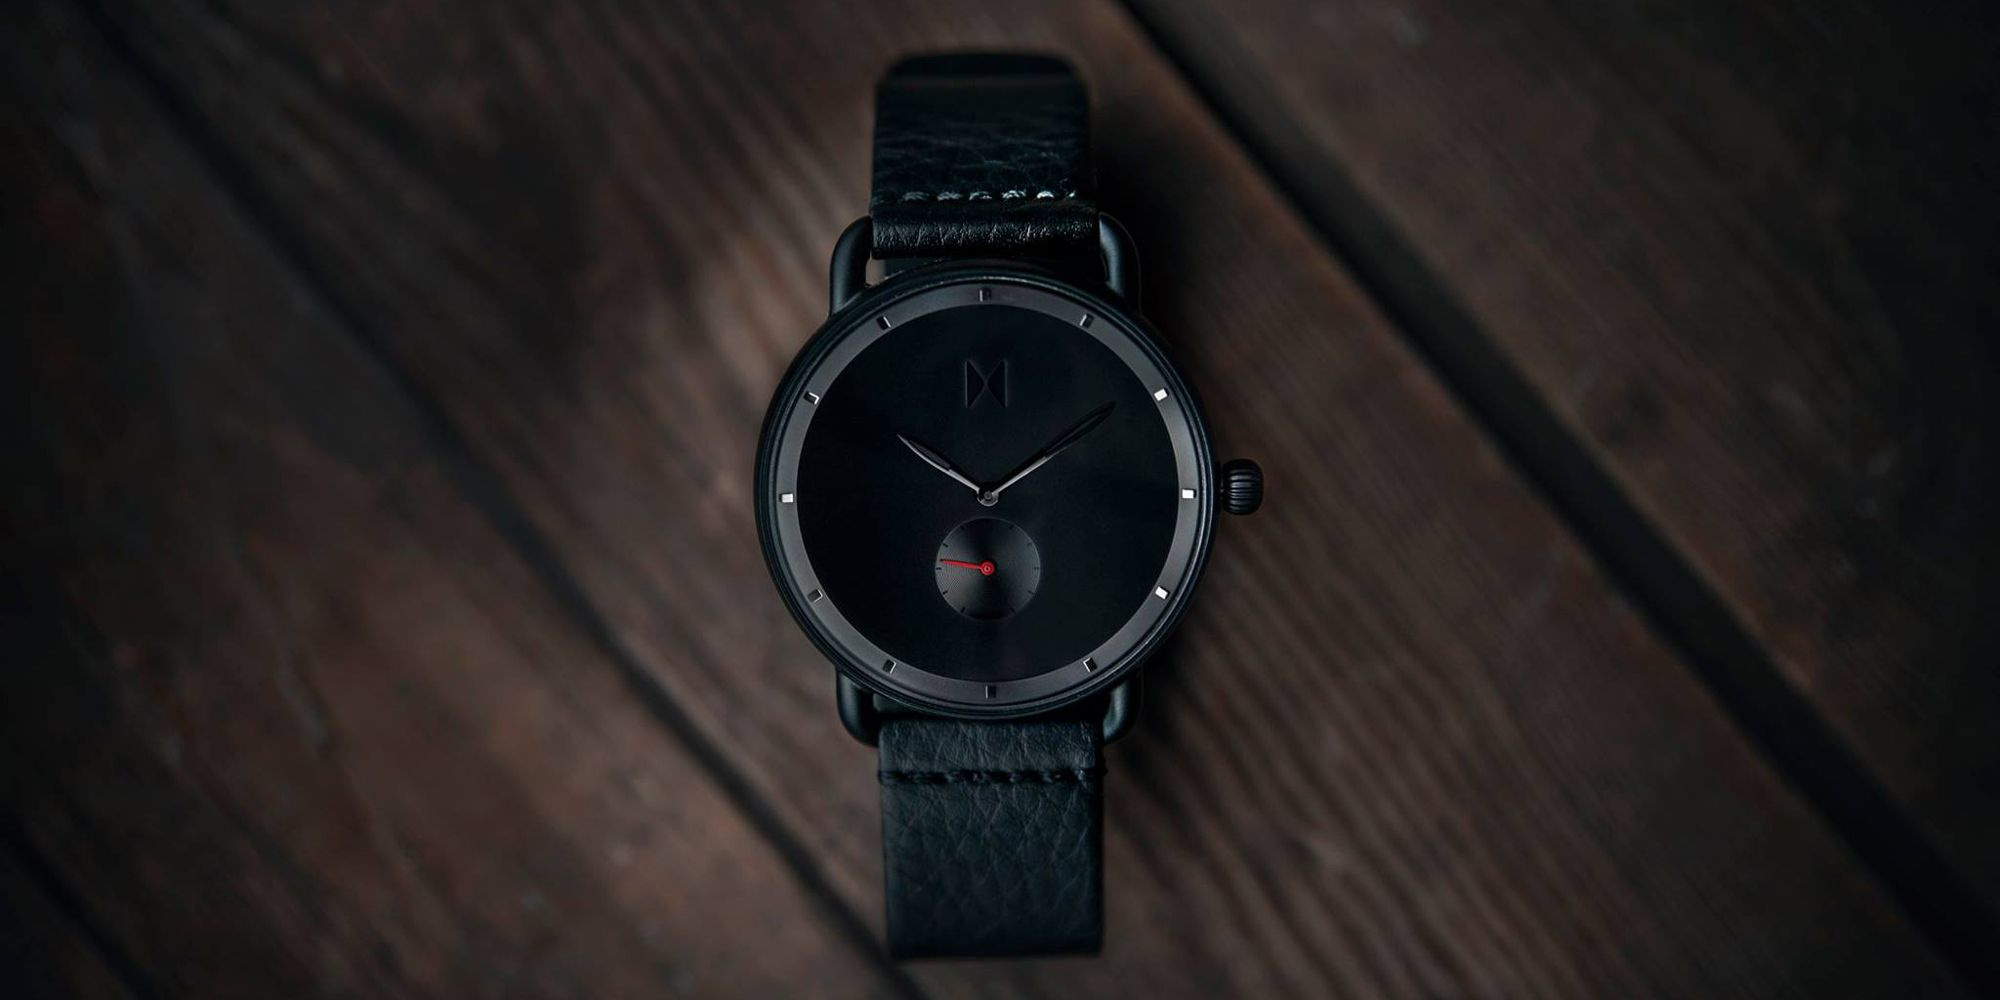 8 Stylish Watches Under $300 That Don't Look Cheap